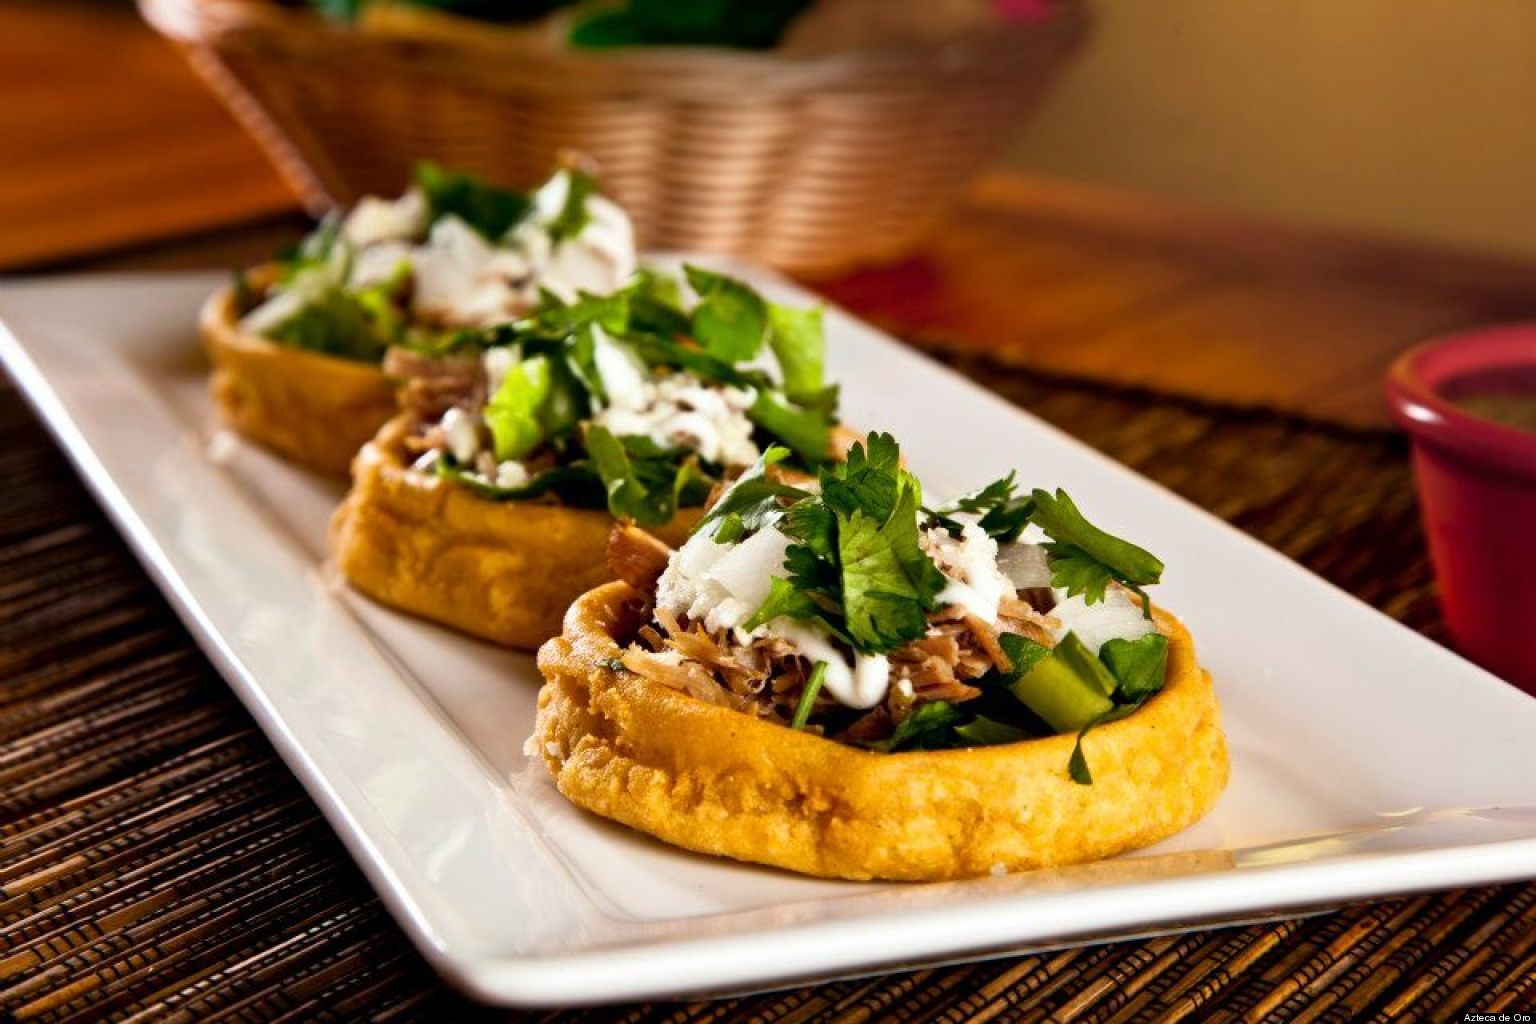 Best Mexican Restaurants Chicago: 10 Of The Tastiest Spots ...